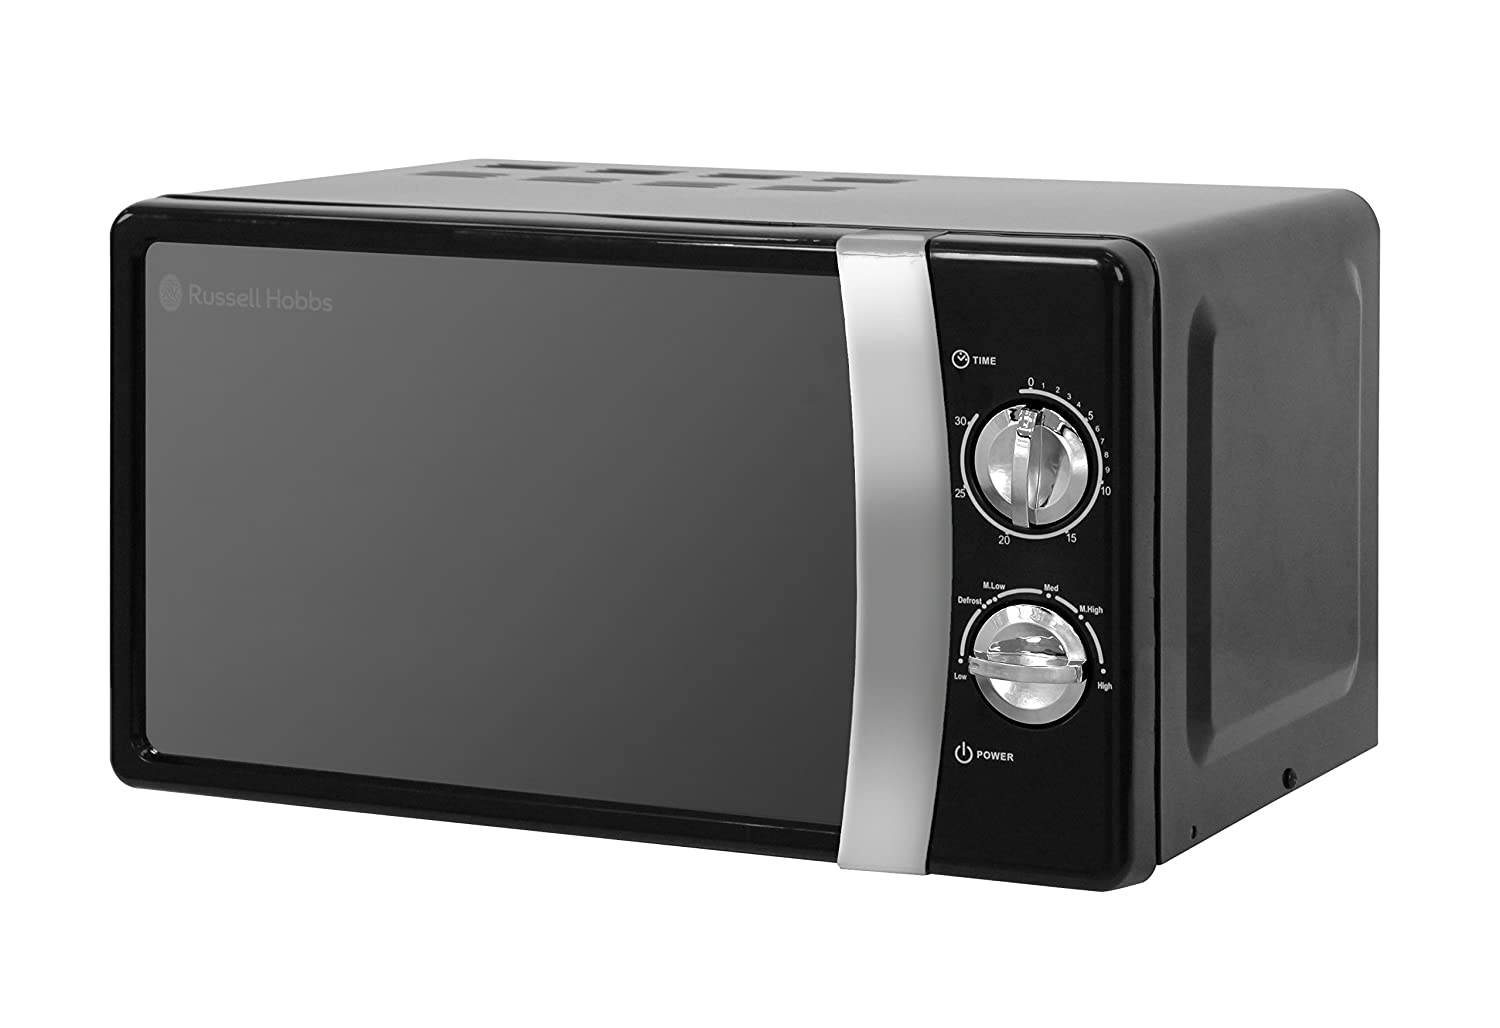 Aldi home sale catalogue special buys stirling 34l microwave oven - Russell Hobbs Rhmm701b 17l Manual 700w Solo Microwave Black